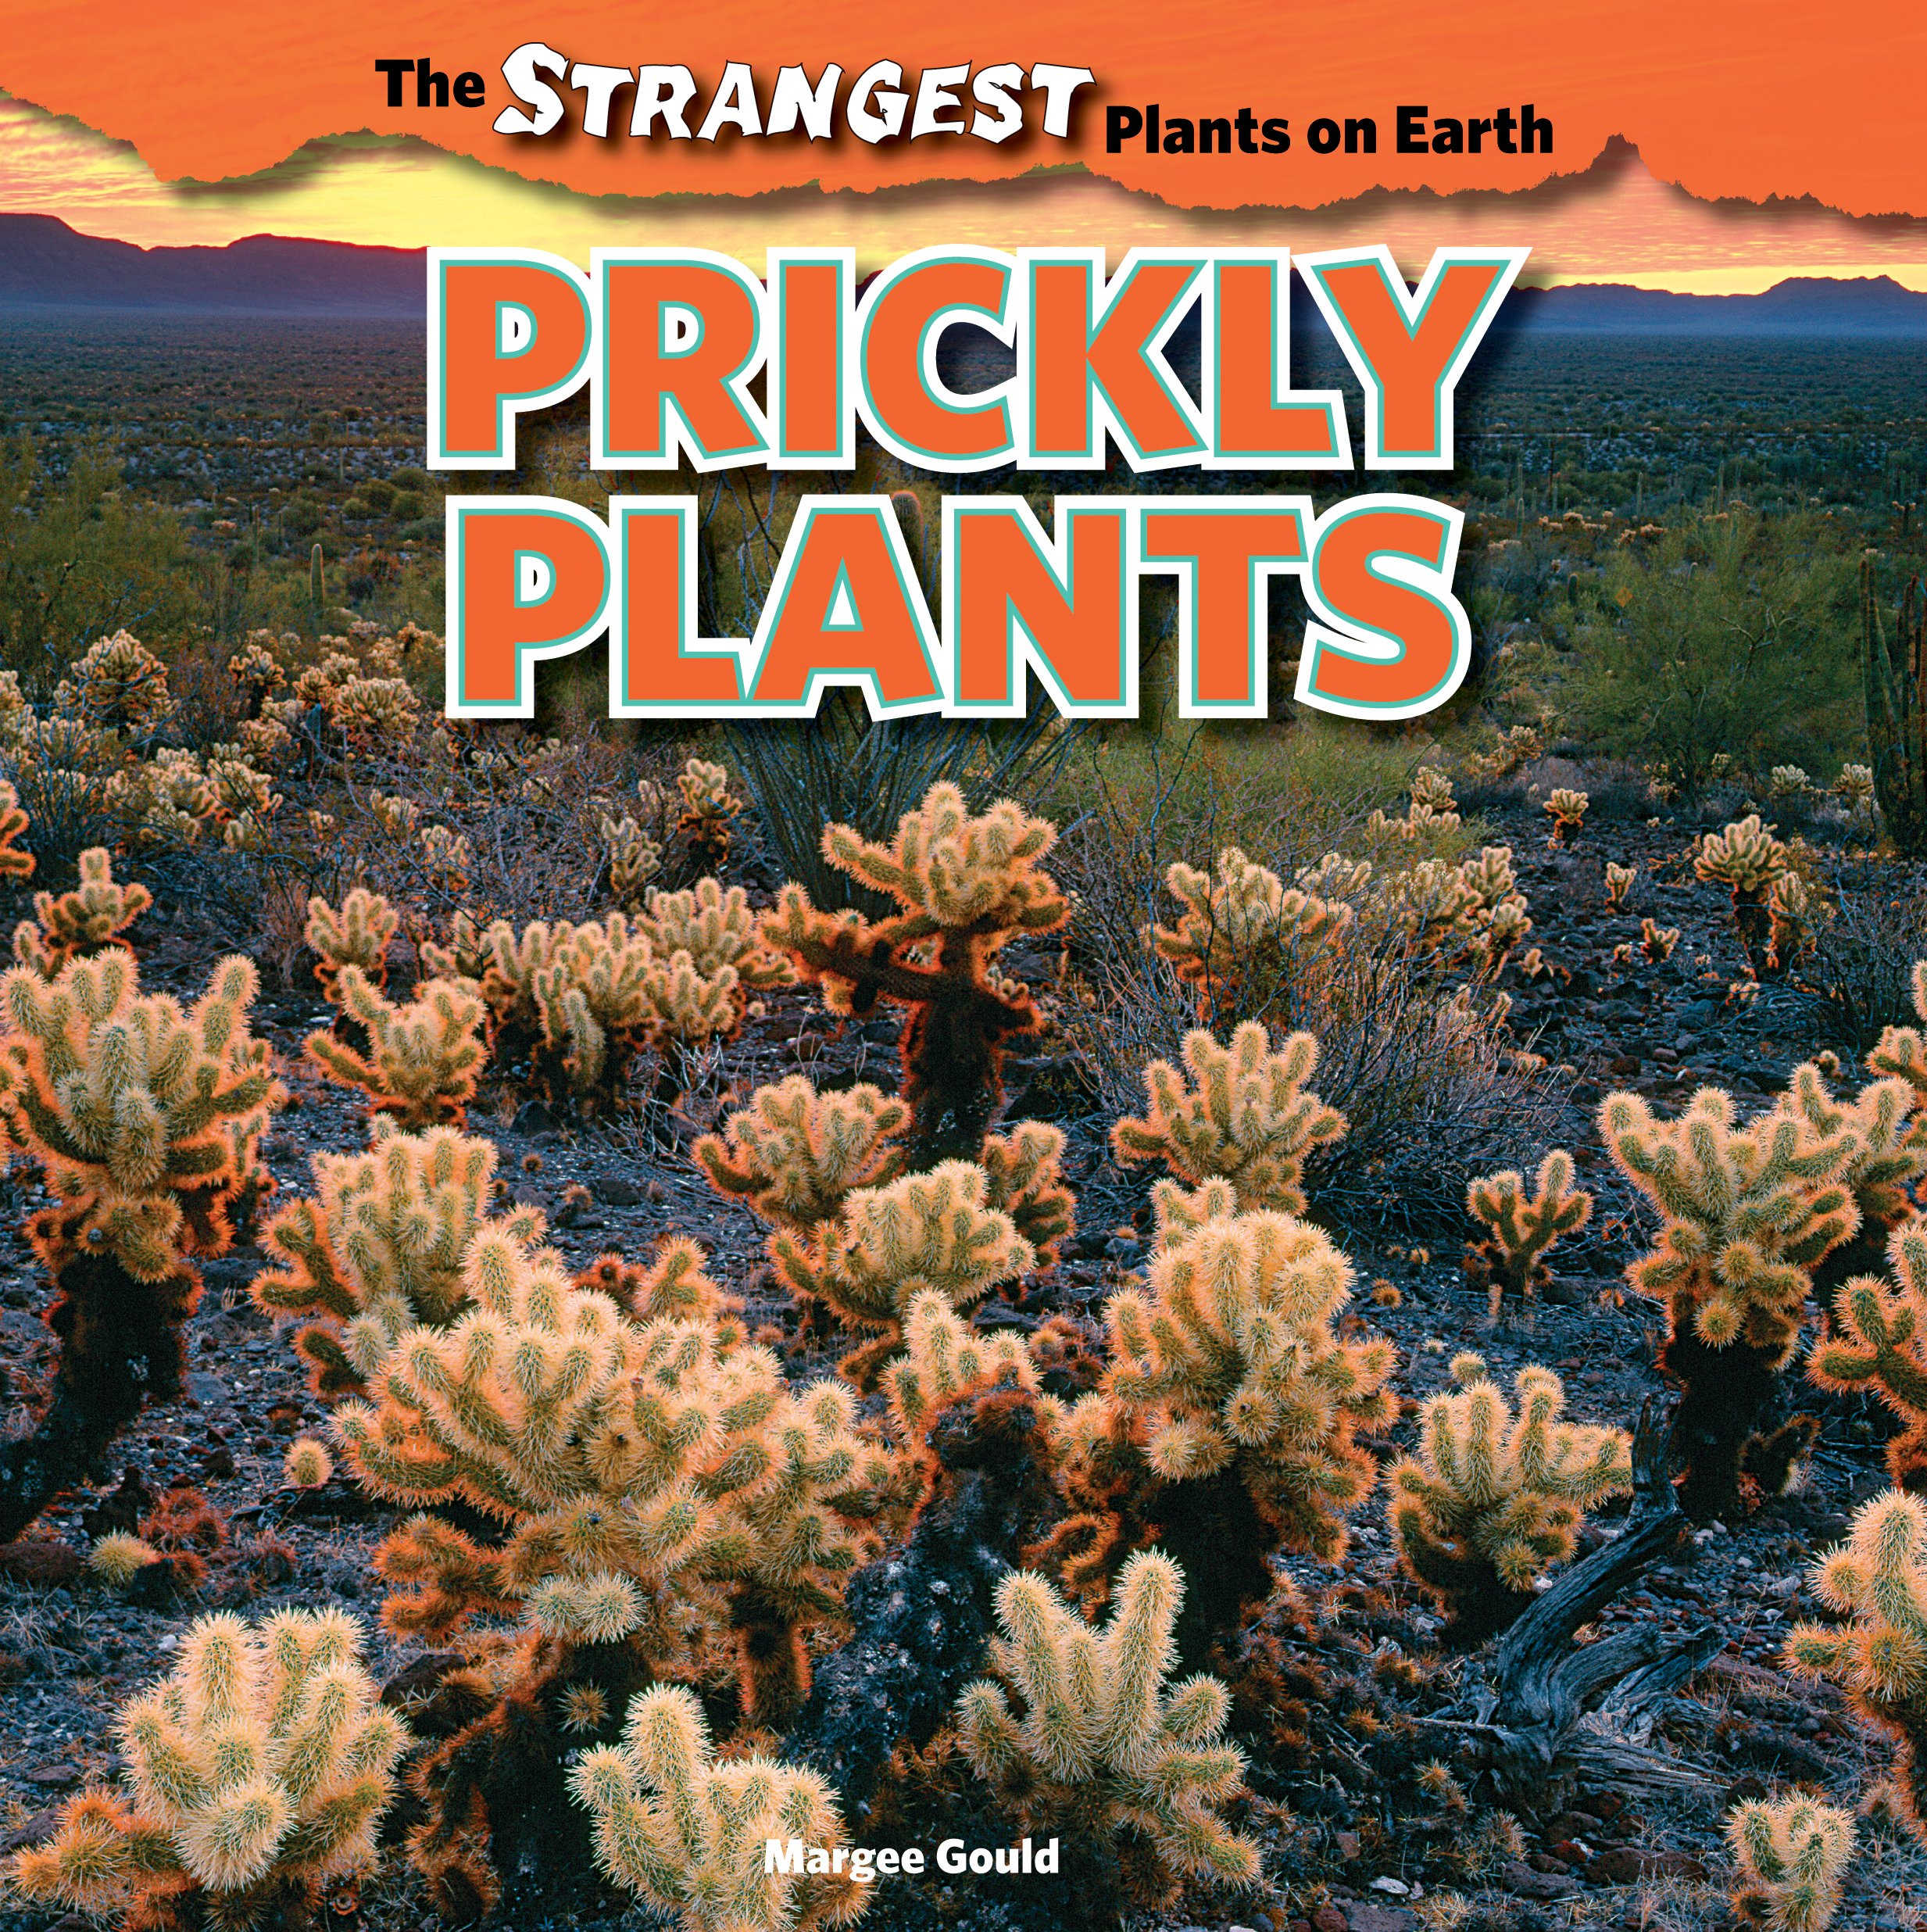 Prickly Plants (The Strangest Plants on Earth)